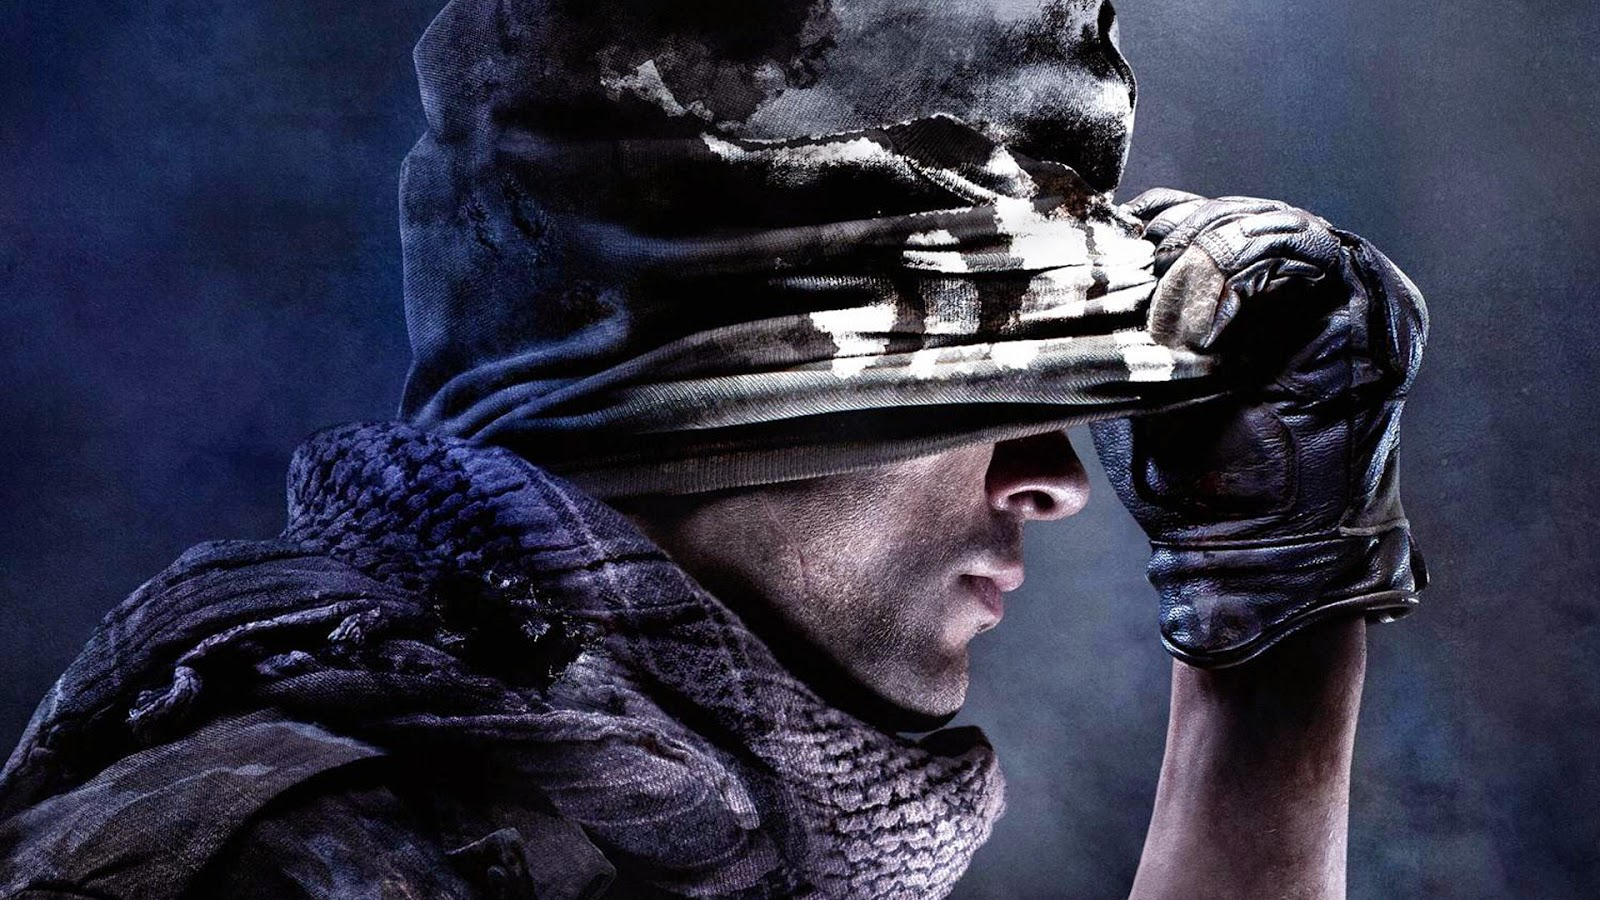 Wallpapers World: Call Of Duty Ghosts-Game